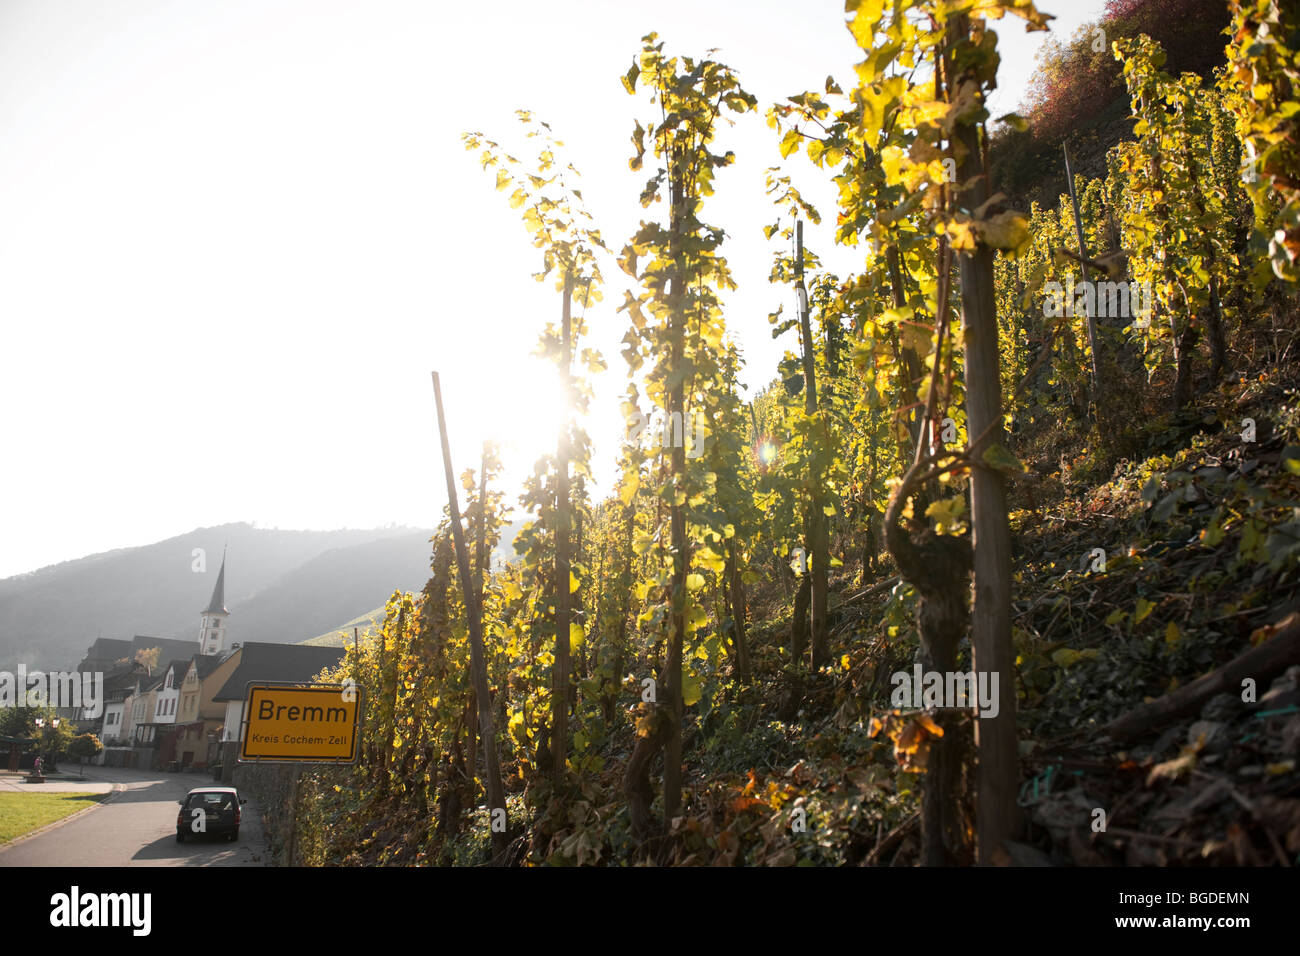 Wine growing town of Bremm, Bremmer Calmont with the steepest vineyards in the world, Mosel River, Rhineland-Palatinate, - Stock Image